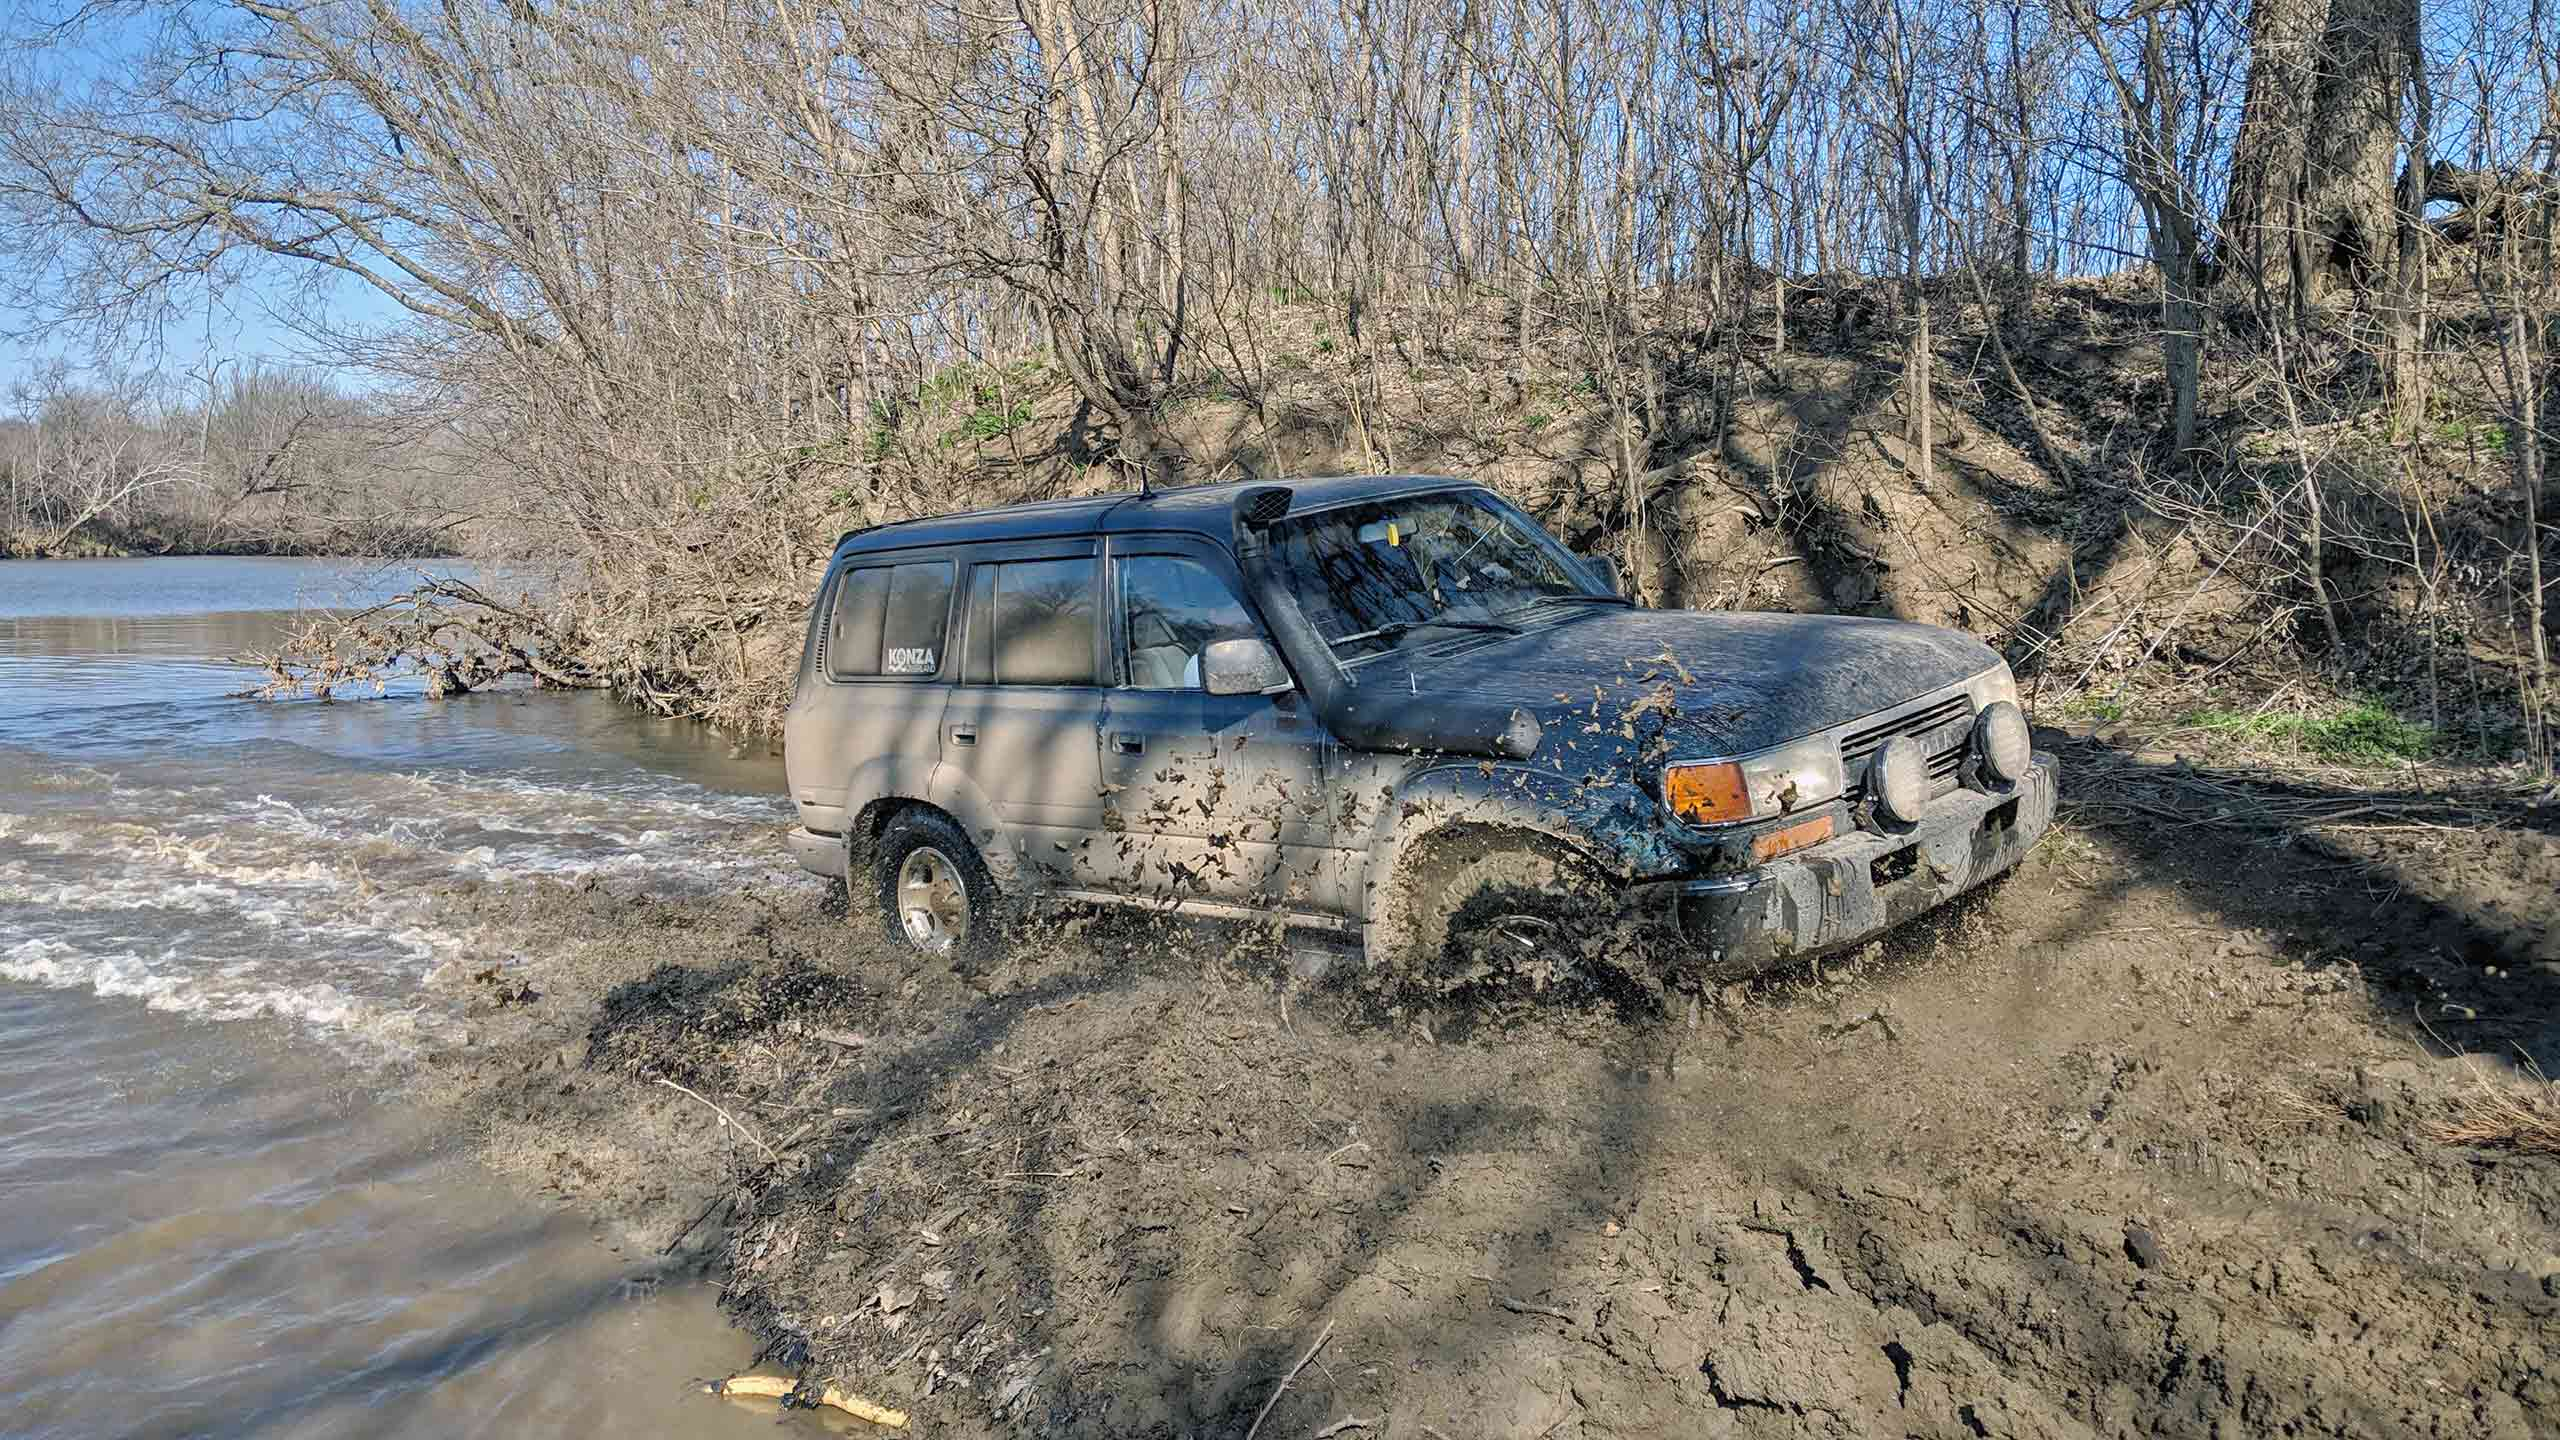 1994 Toyota Land Cruiser - Flint Hills